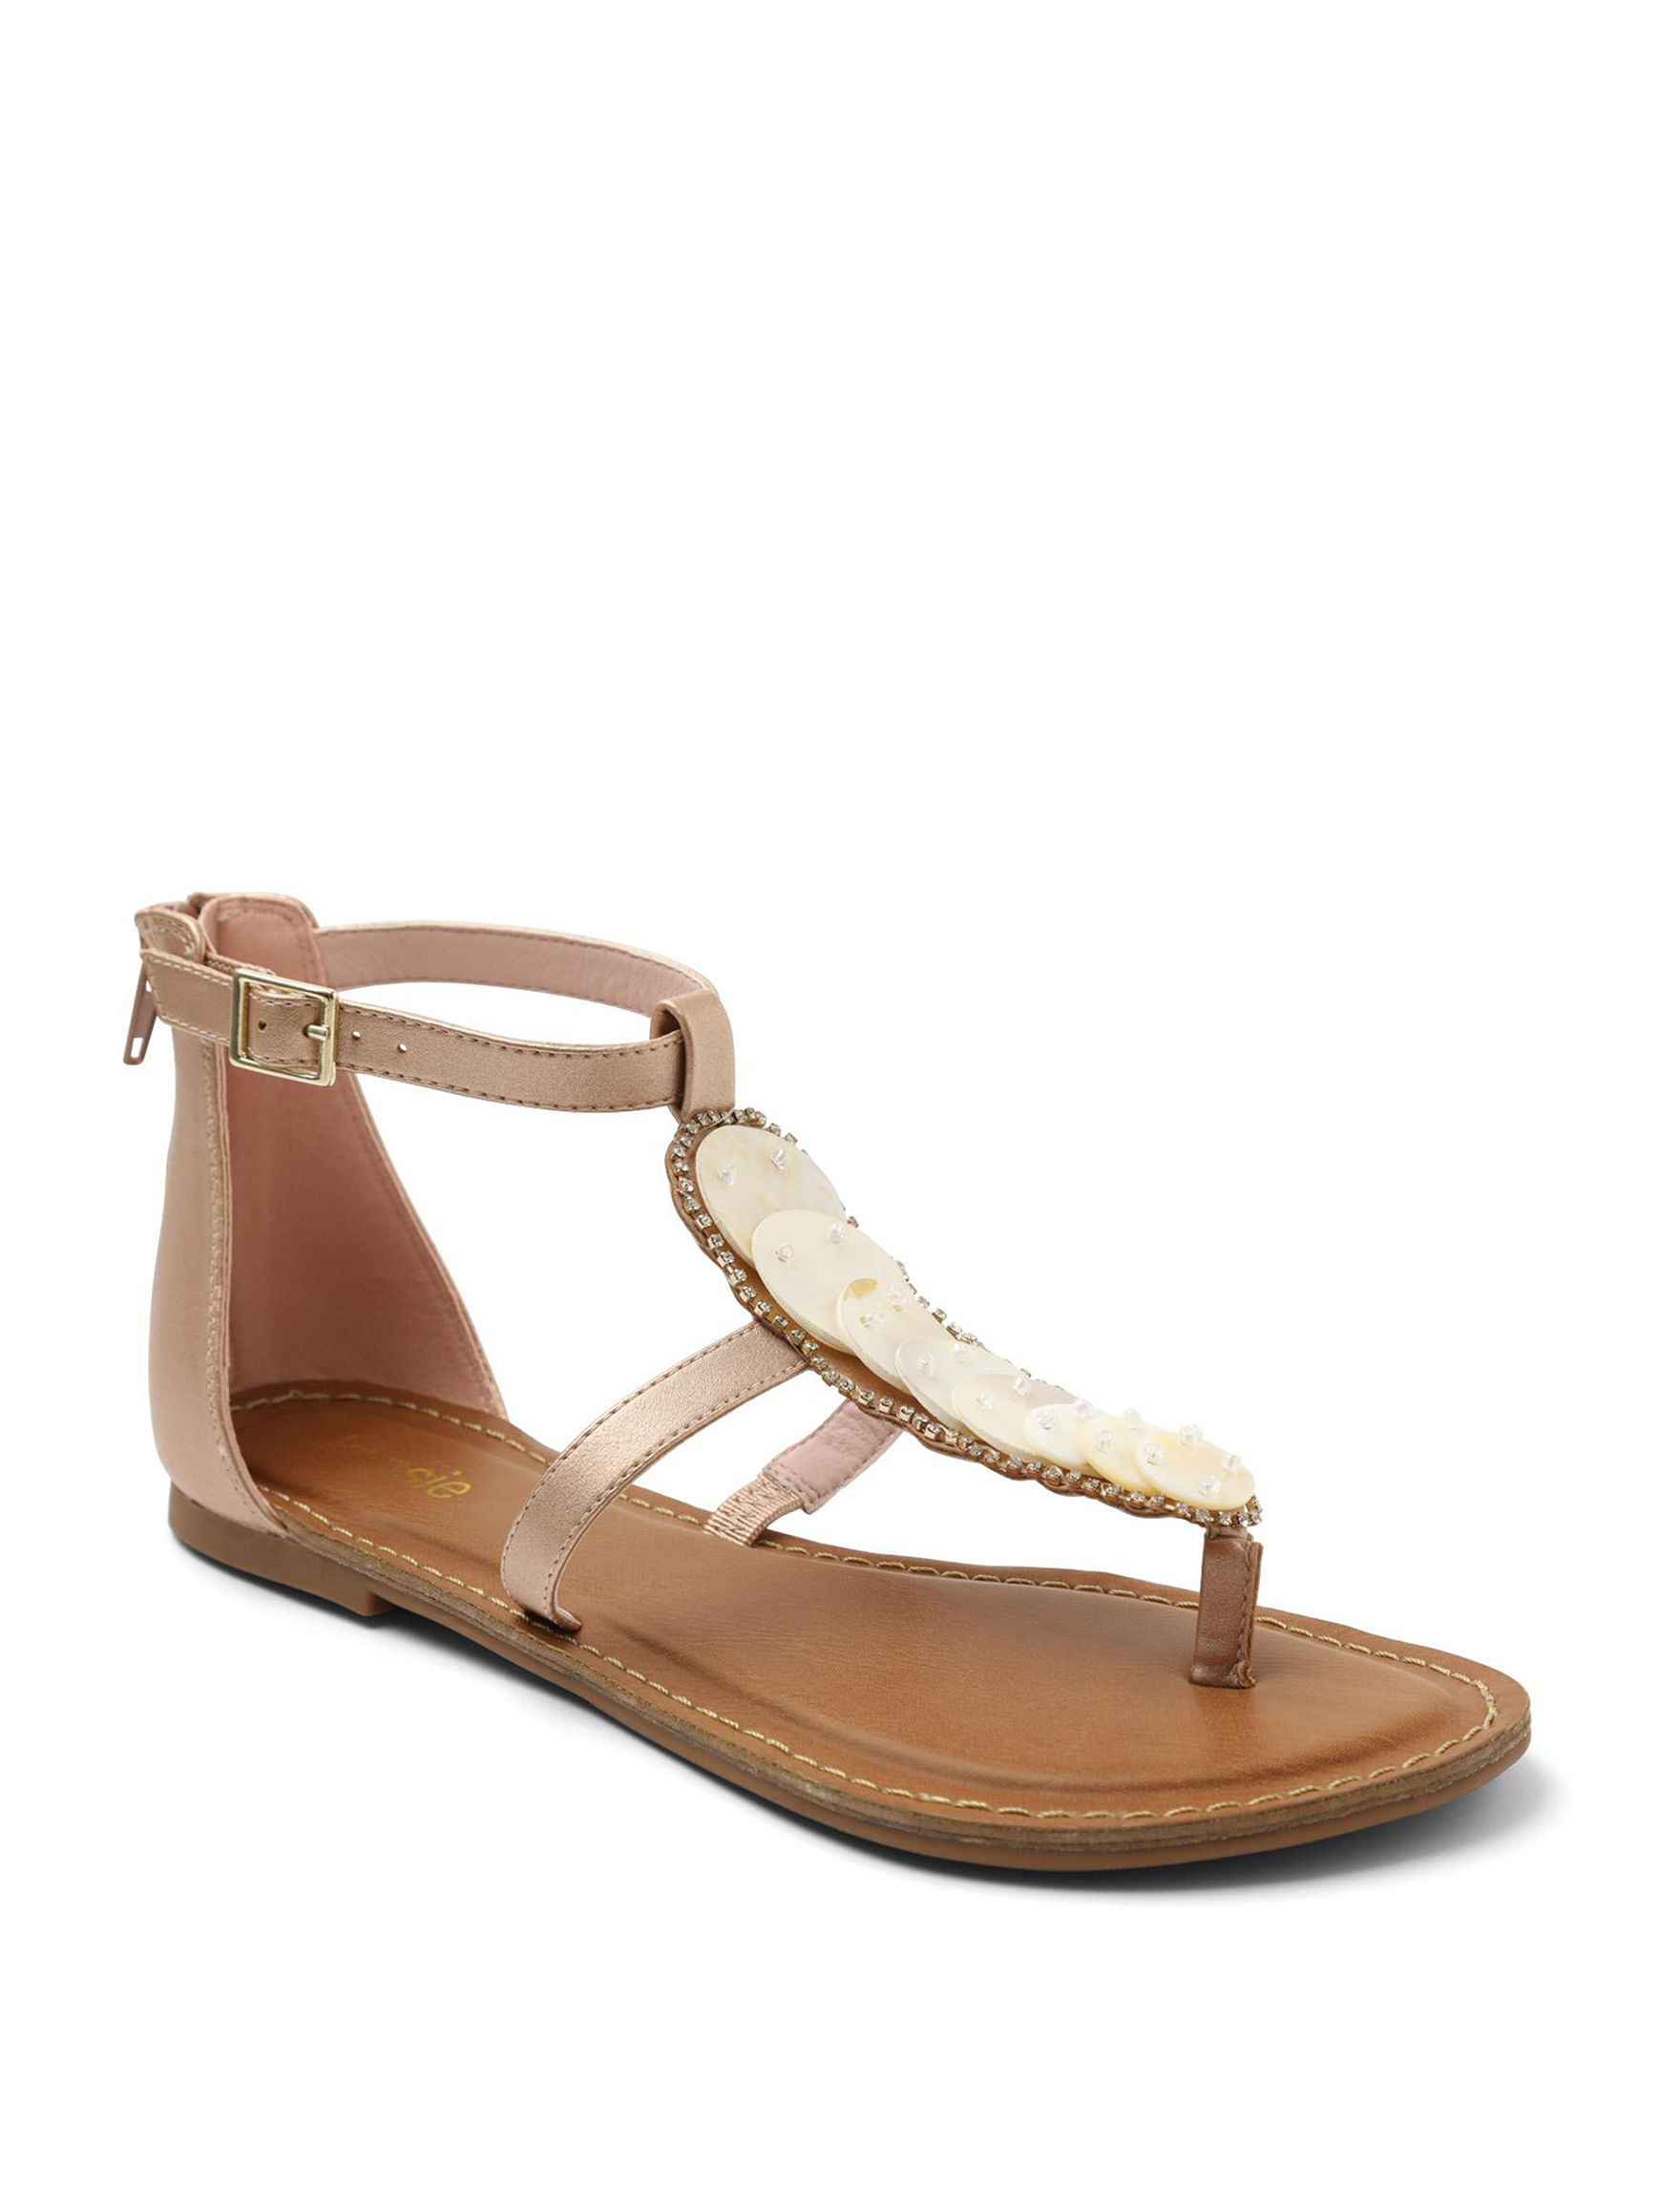 Kensie Rose Gold Flat Sandals